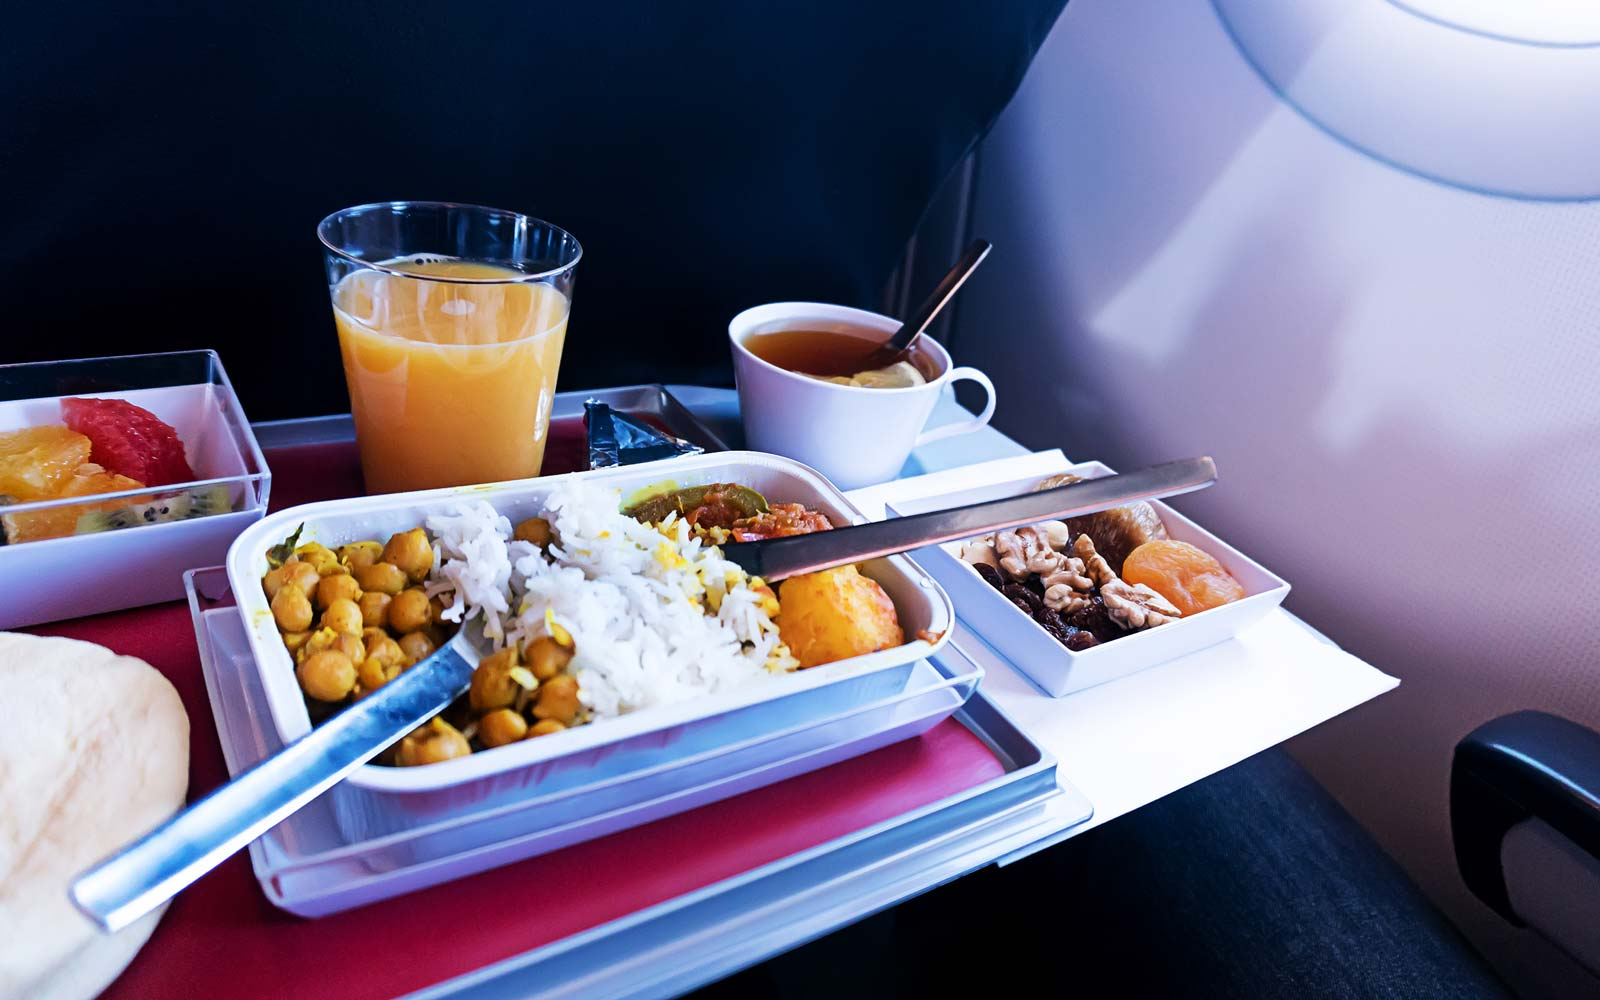 photo of Food served on board of economy class airplane on the table